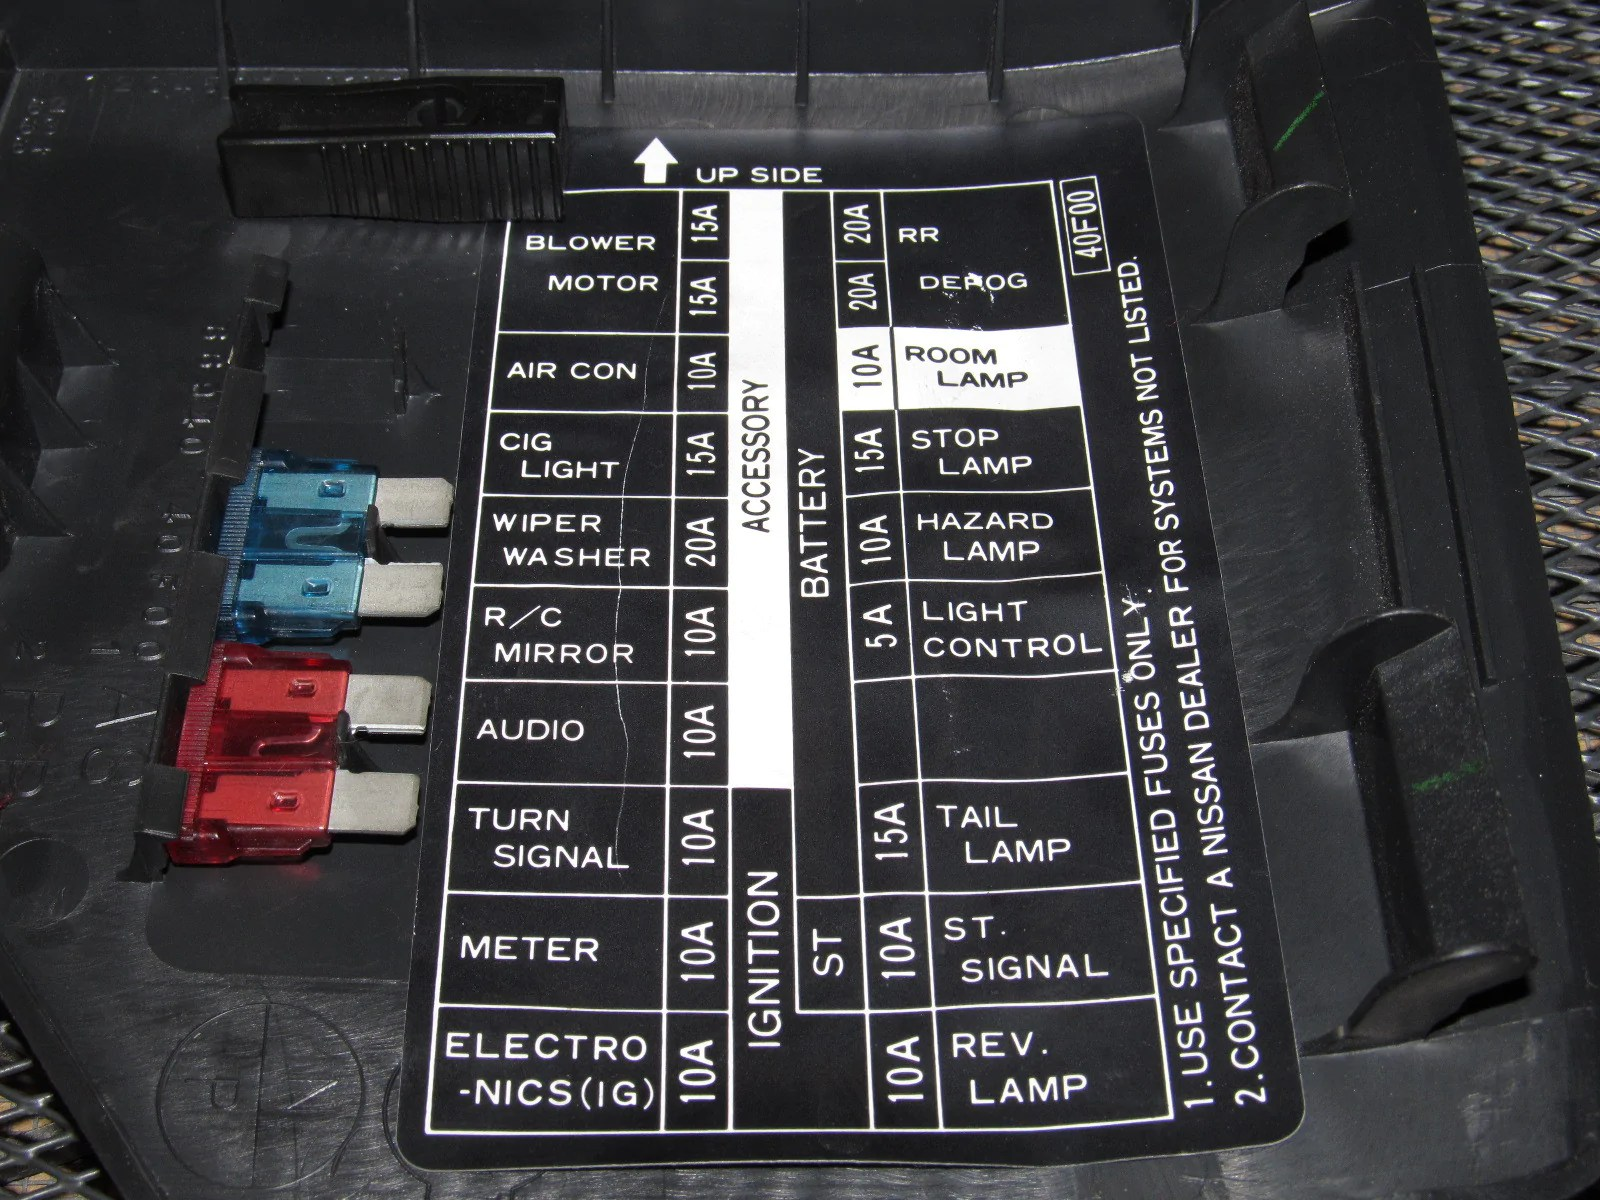 1995 nissan 240sx interior fuse box diagram [ 1600 x 1200 Pixel ]